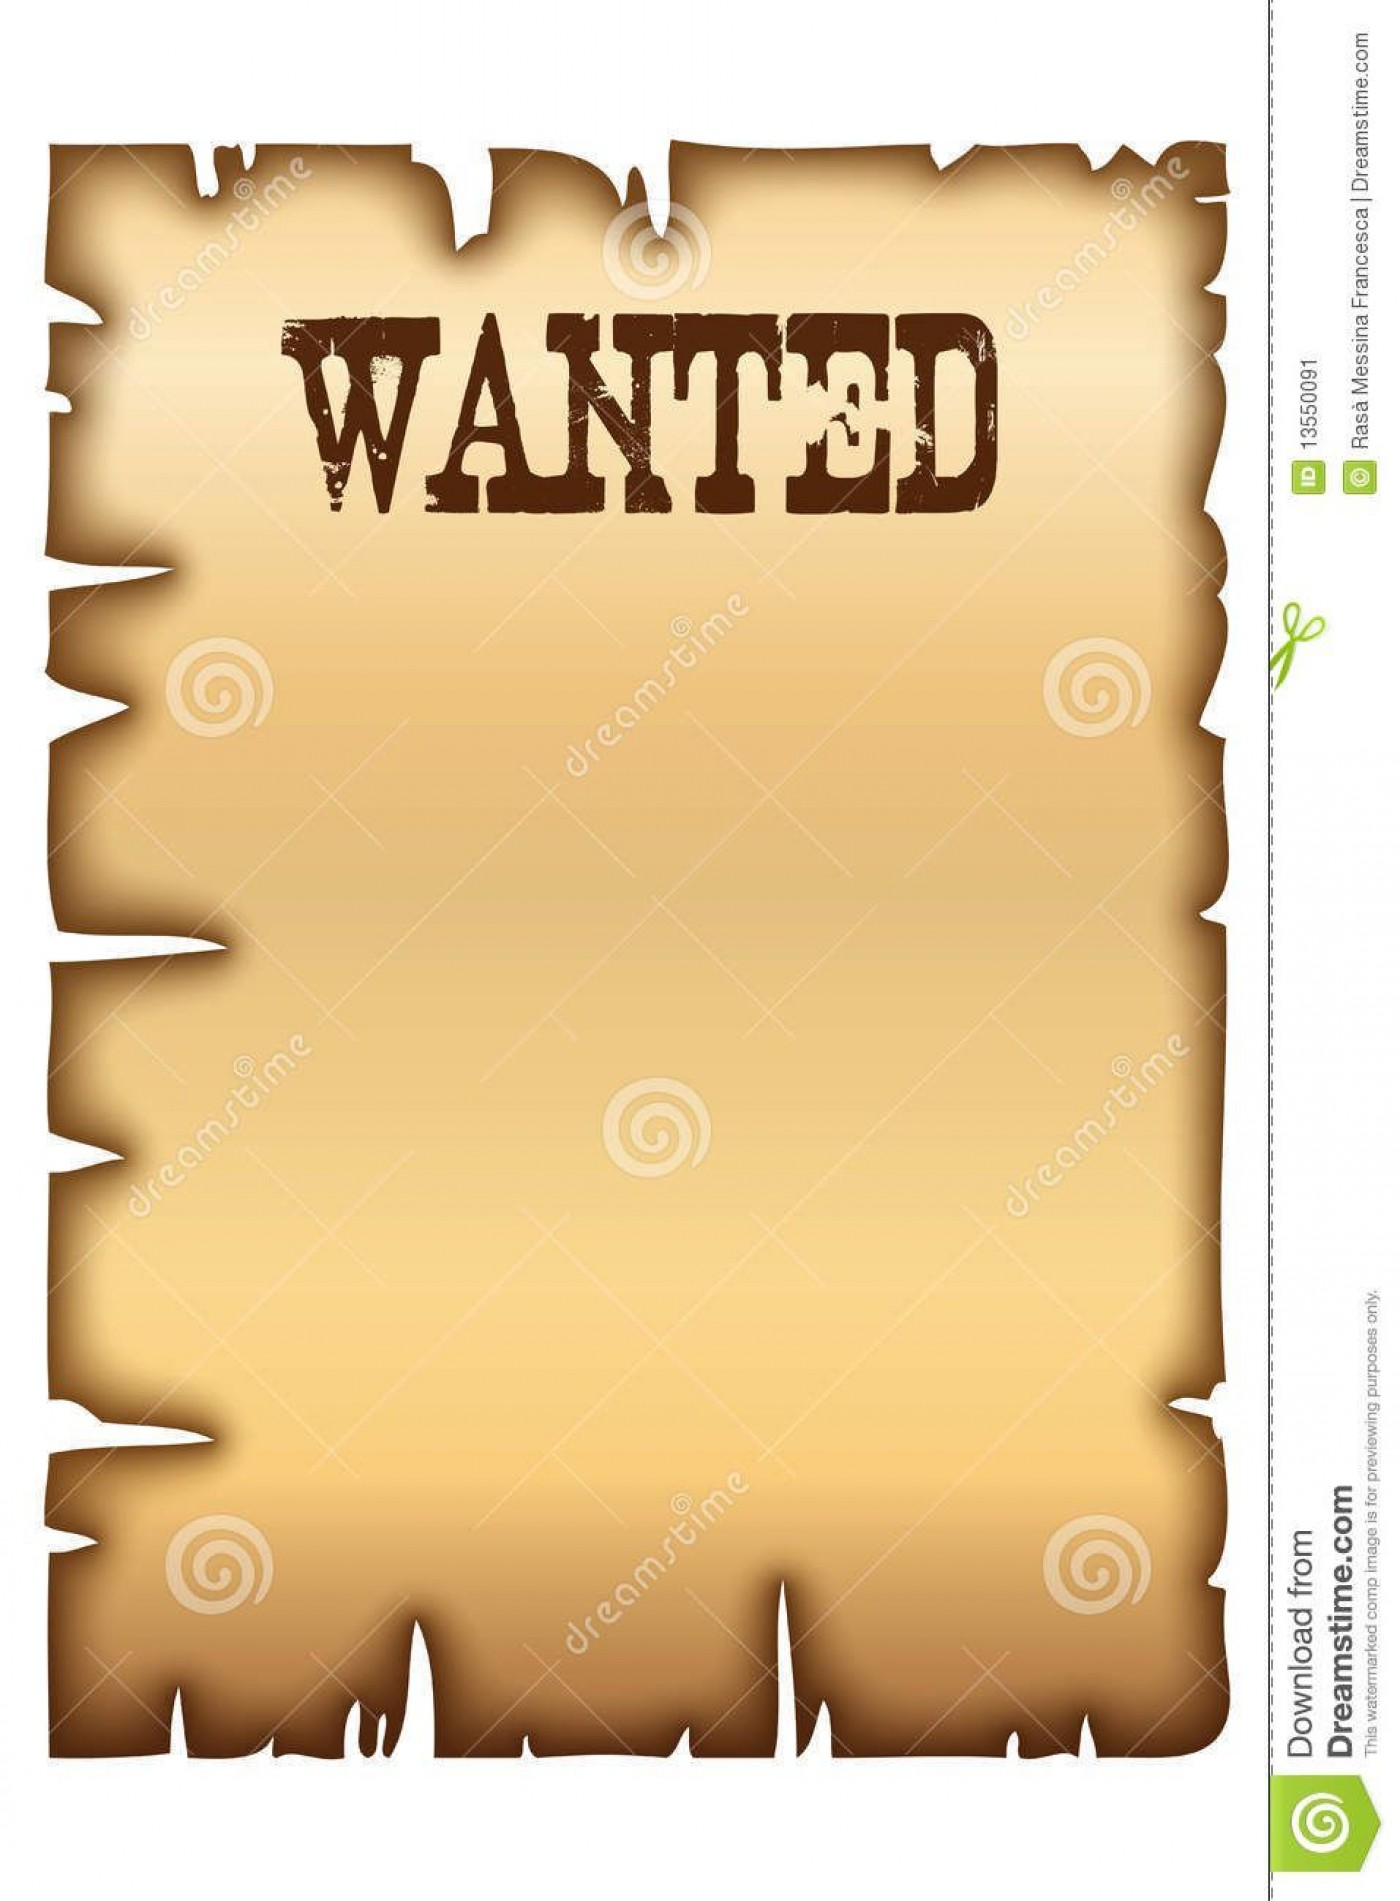 004 Wonderful Wanted Poster Template Microsoft Word High Definition  Western Most1400